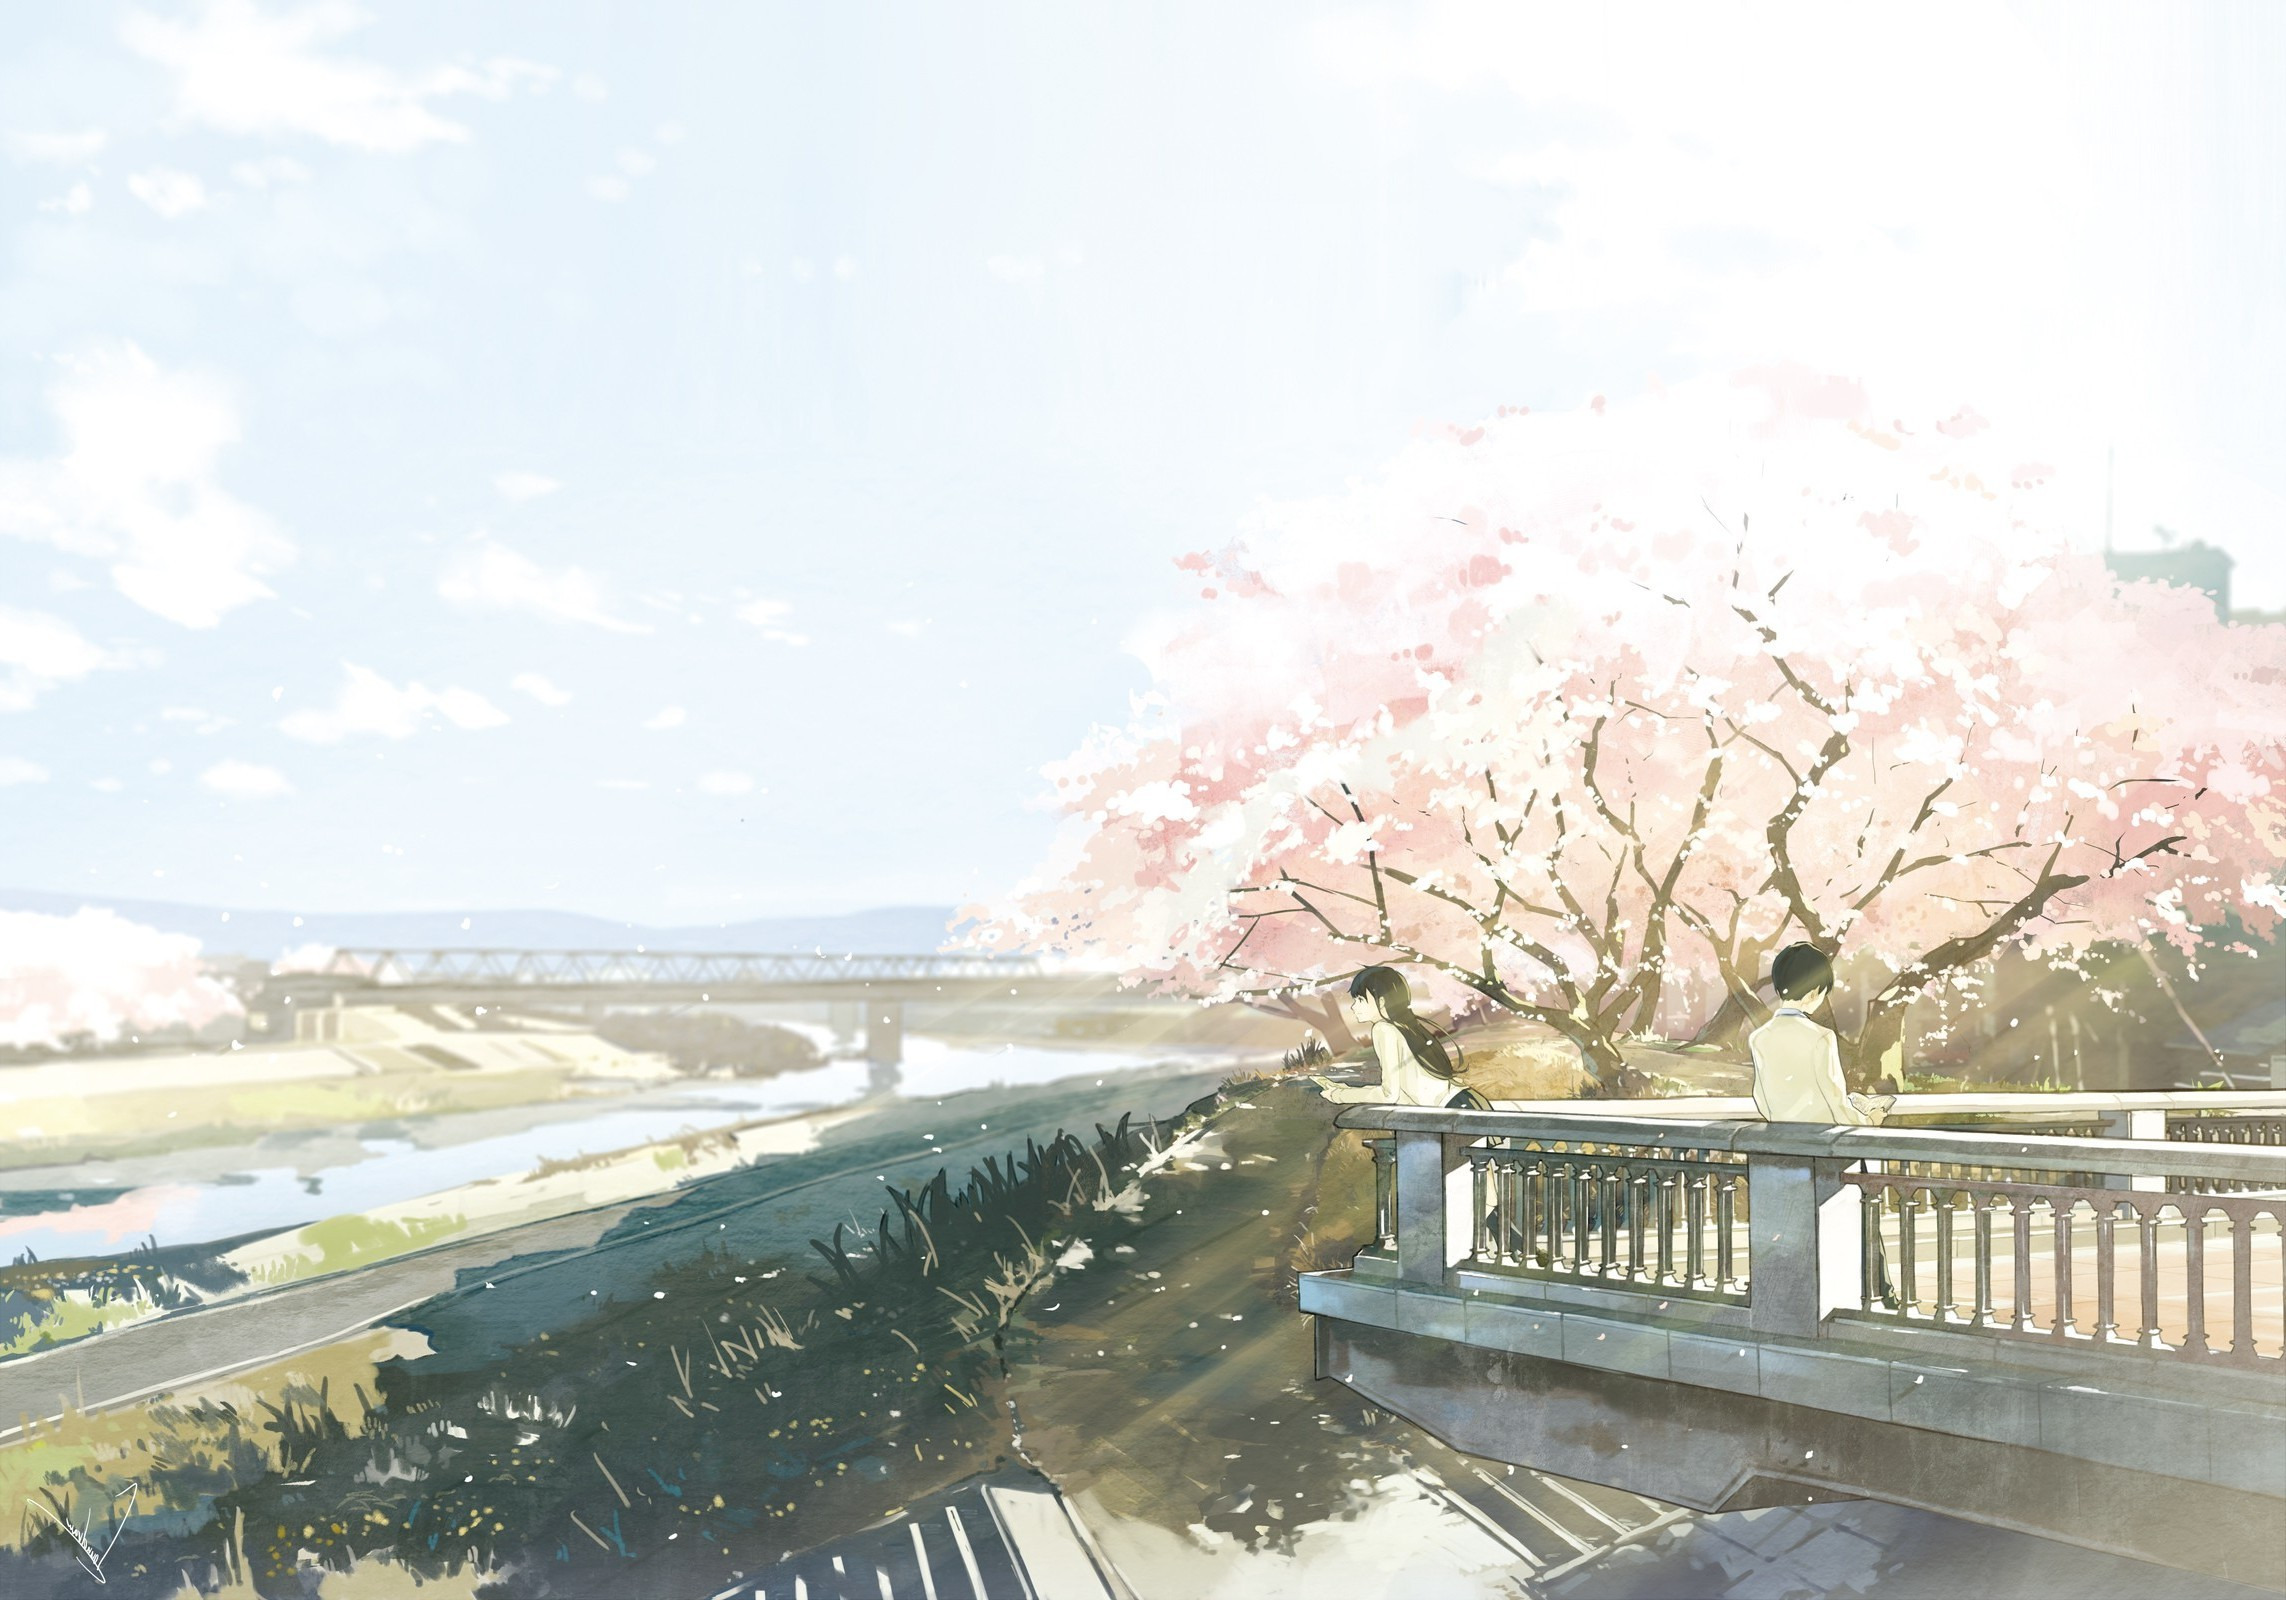 2286x1600 cherry Blossom, River, Bridge, Anime, Original Characters Wallpapers HD /  Desktop and Mobile Backgrounds